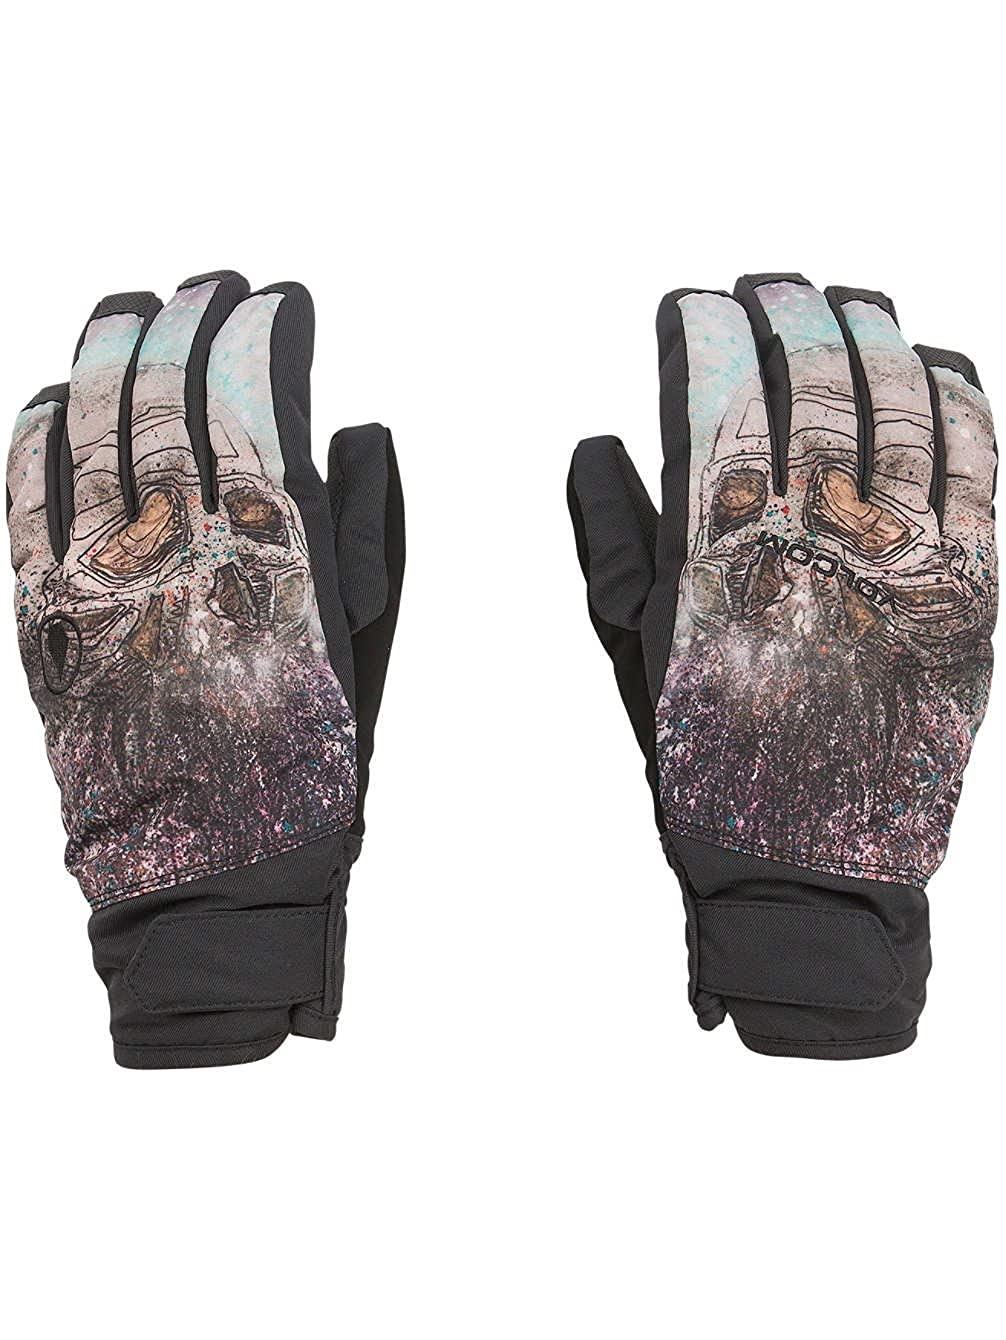 Volcom Men's Nyle 2 Layer Nylon Shell Snow Glove J6851905